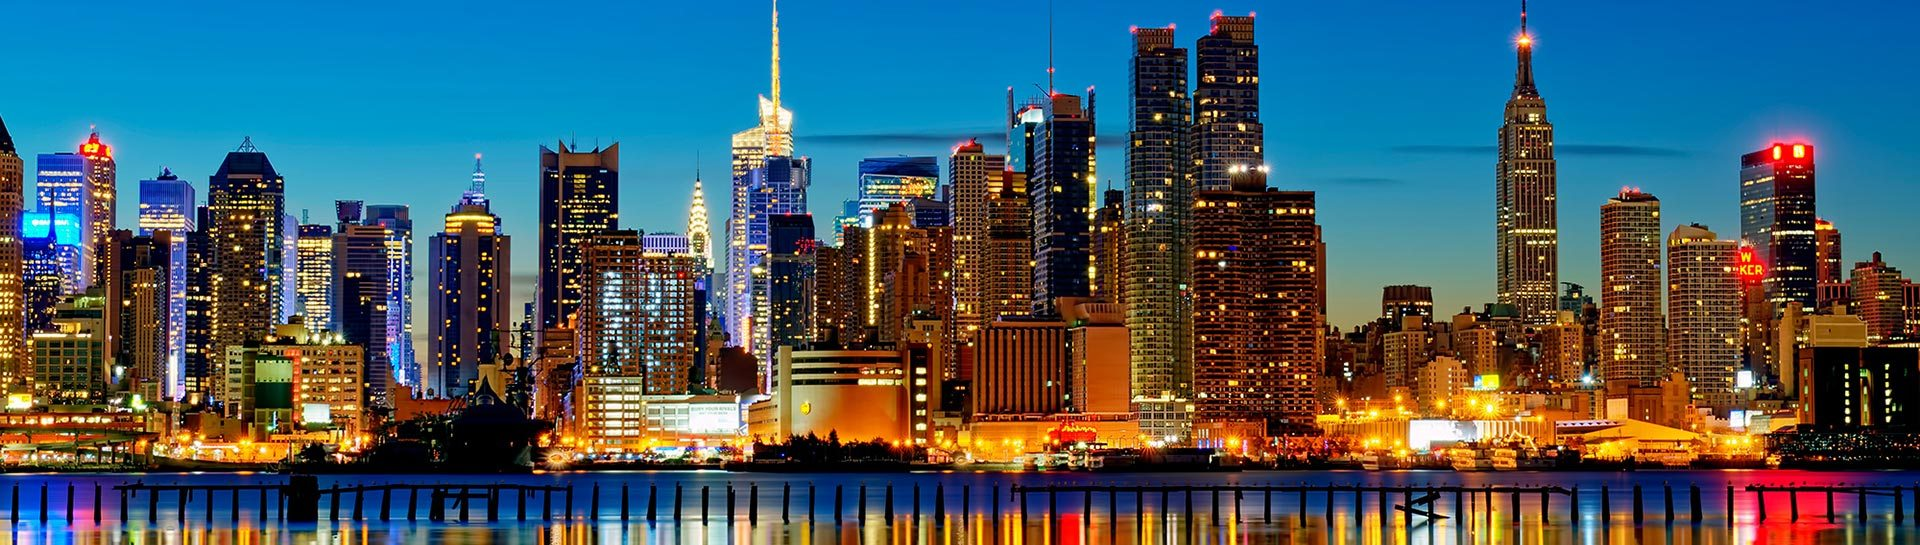 New York City skyline panoramic